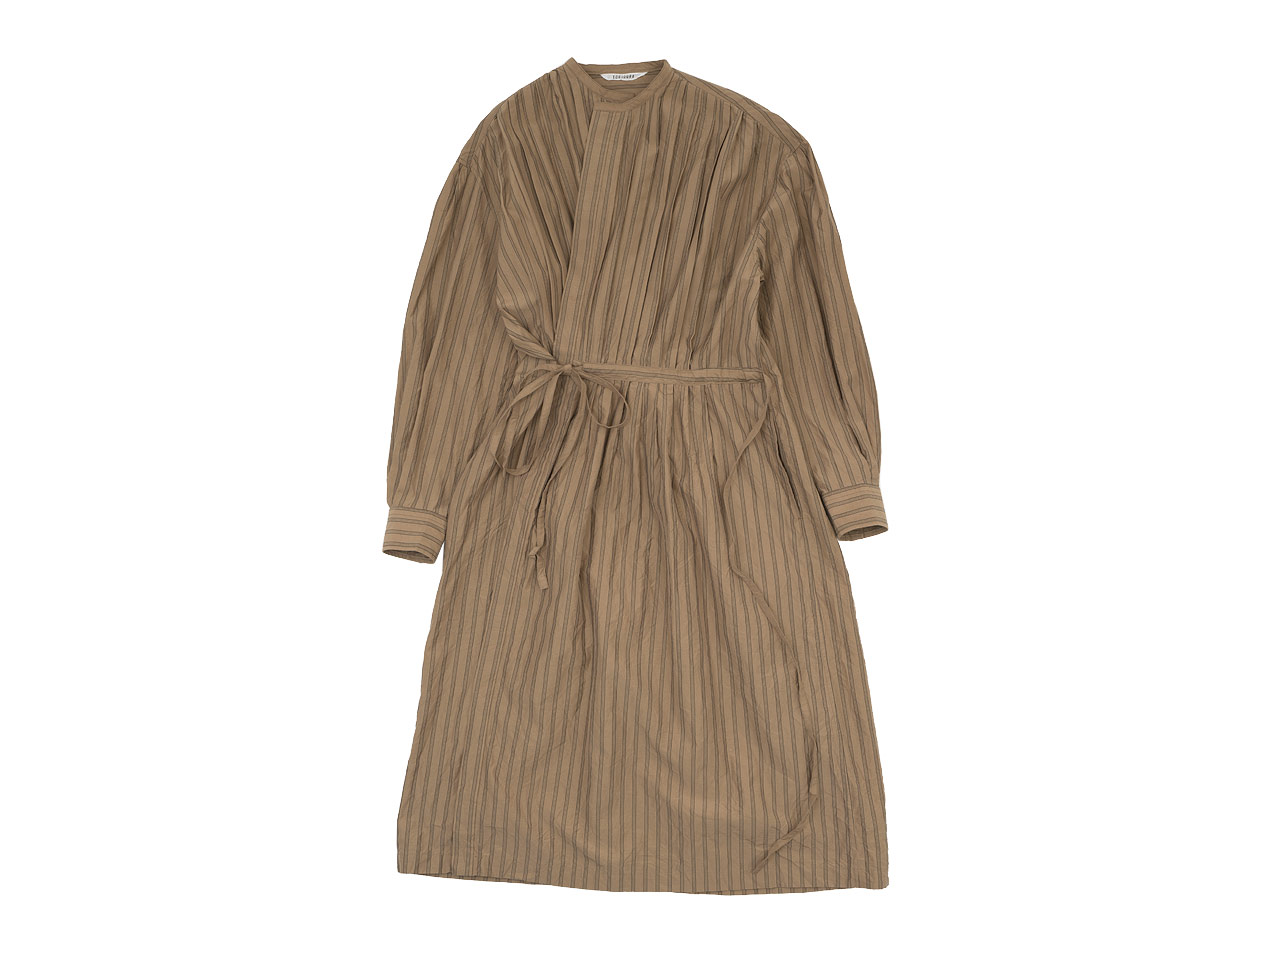 TOUJOURS Pin Tuck String Robe Dress / Back Button Long Shirt